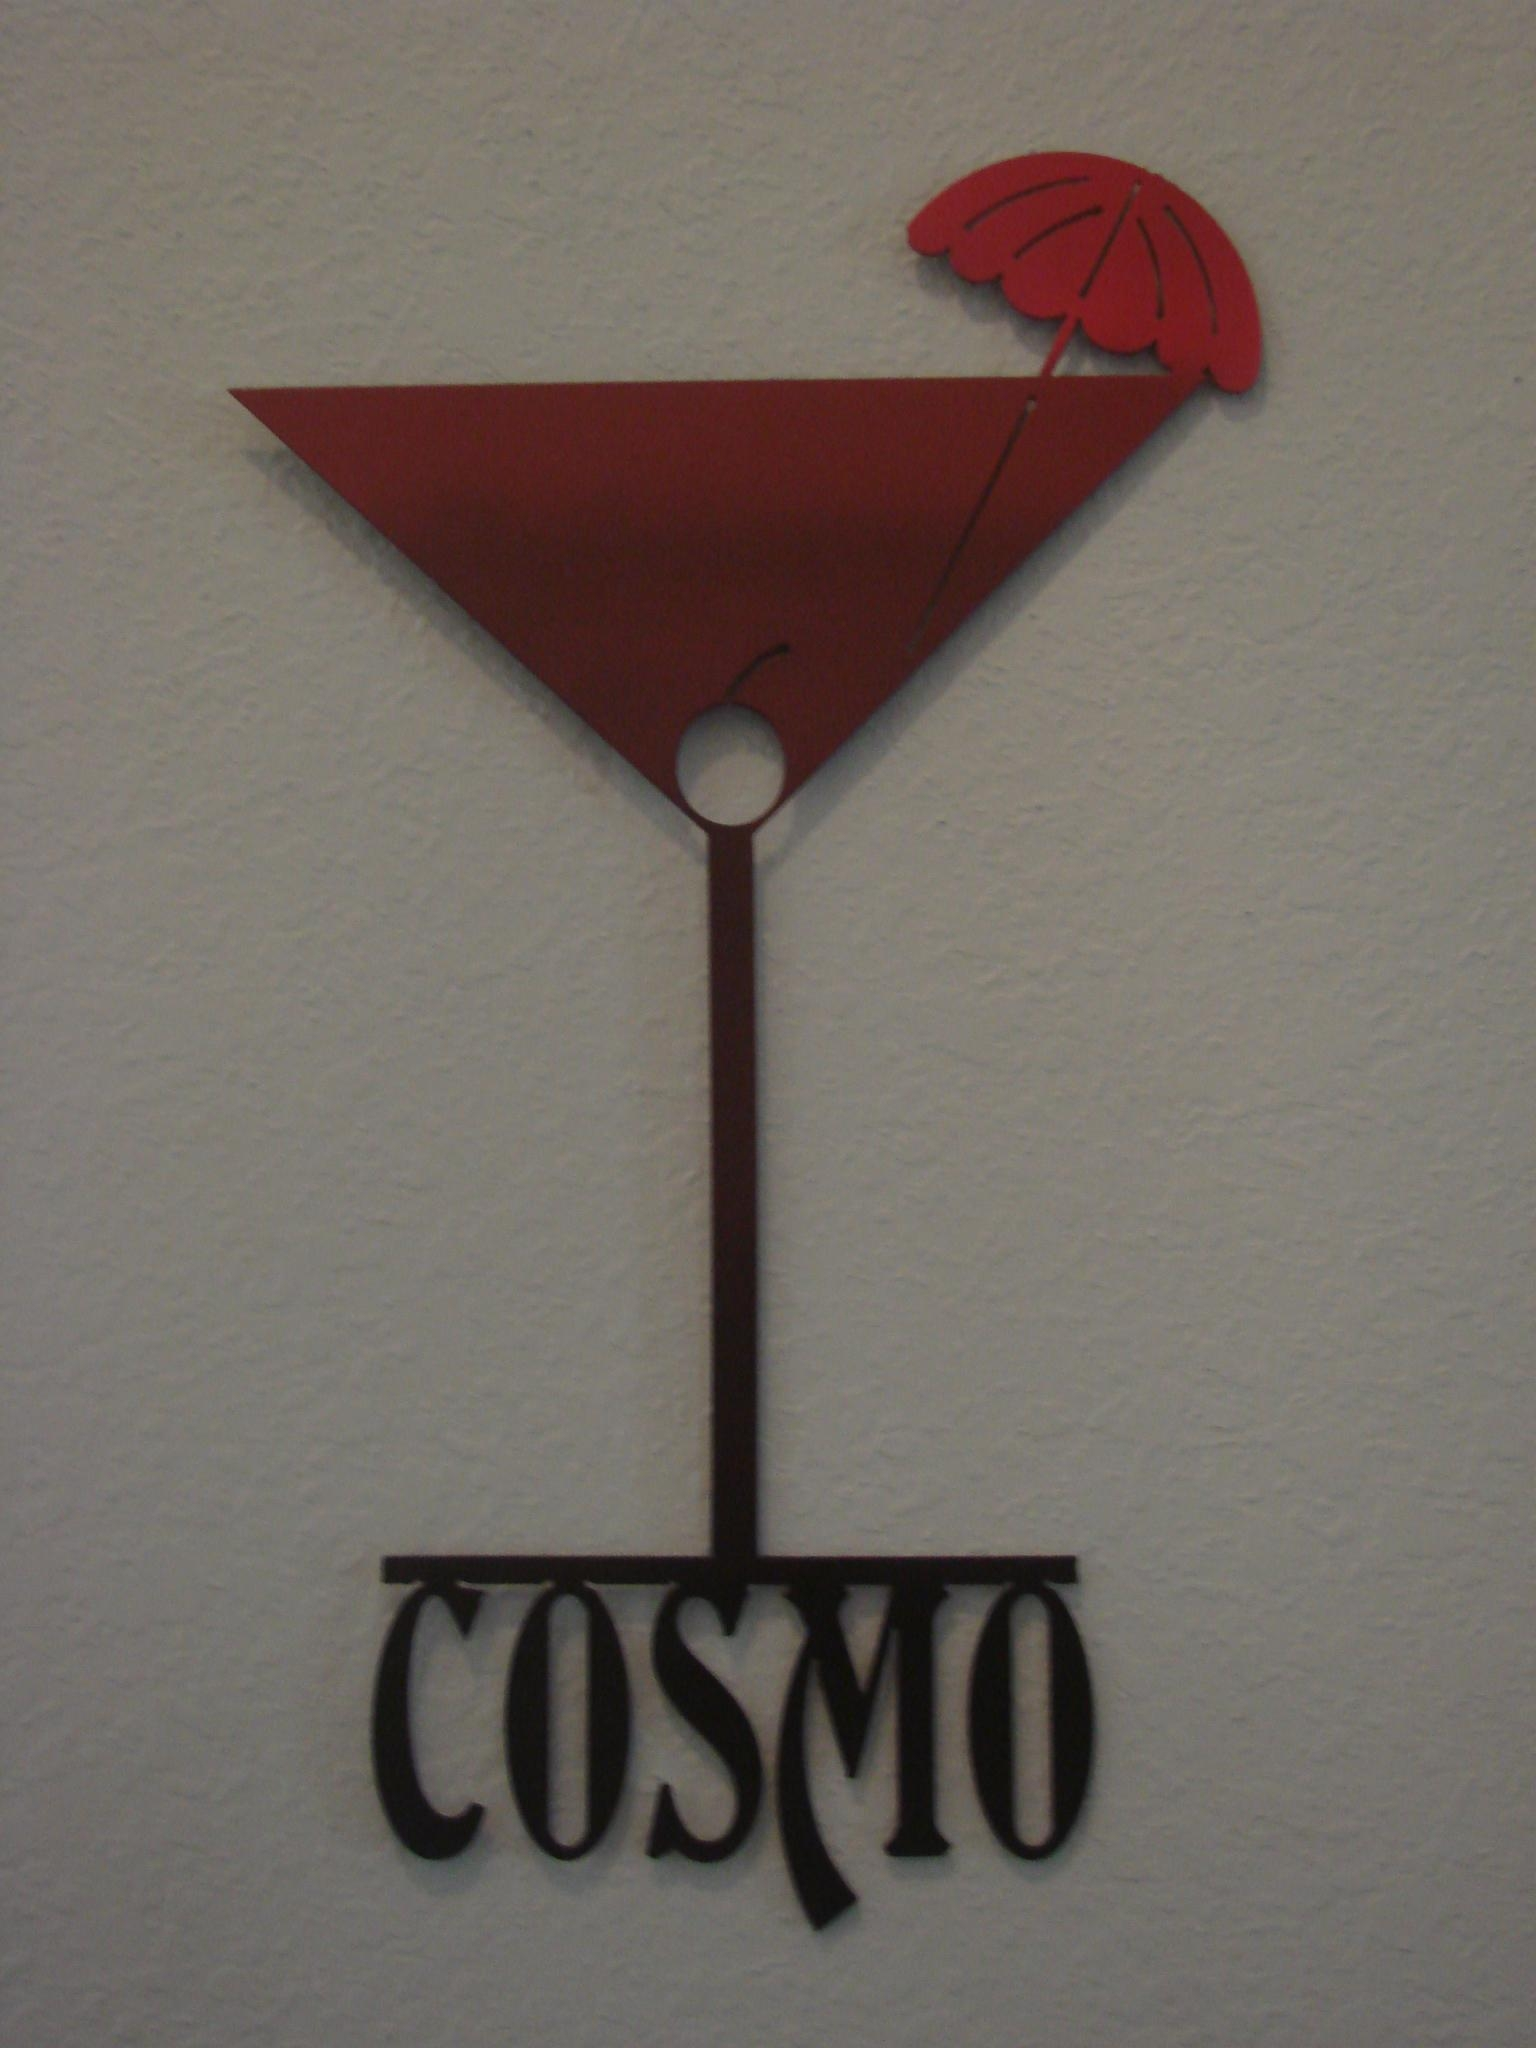 16 Gauge Ombre Red To Black Cosmopolitan Martini Glass Metal Wall For Martini Glass Wall Art (View 3 of 20)